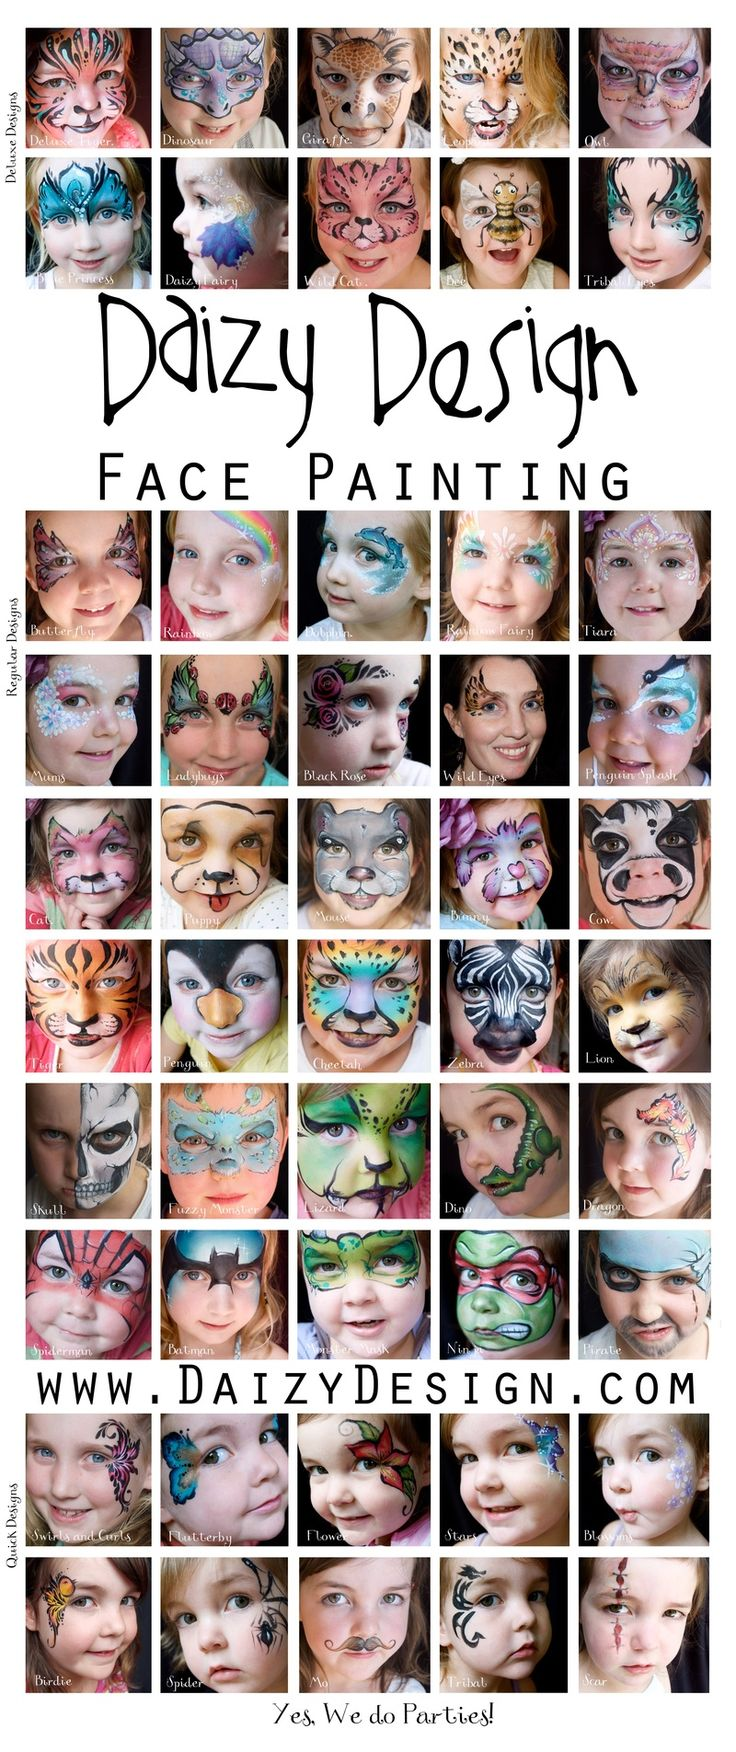 Daizy Design Face Painting tutorials